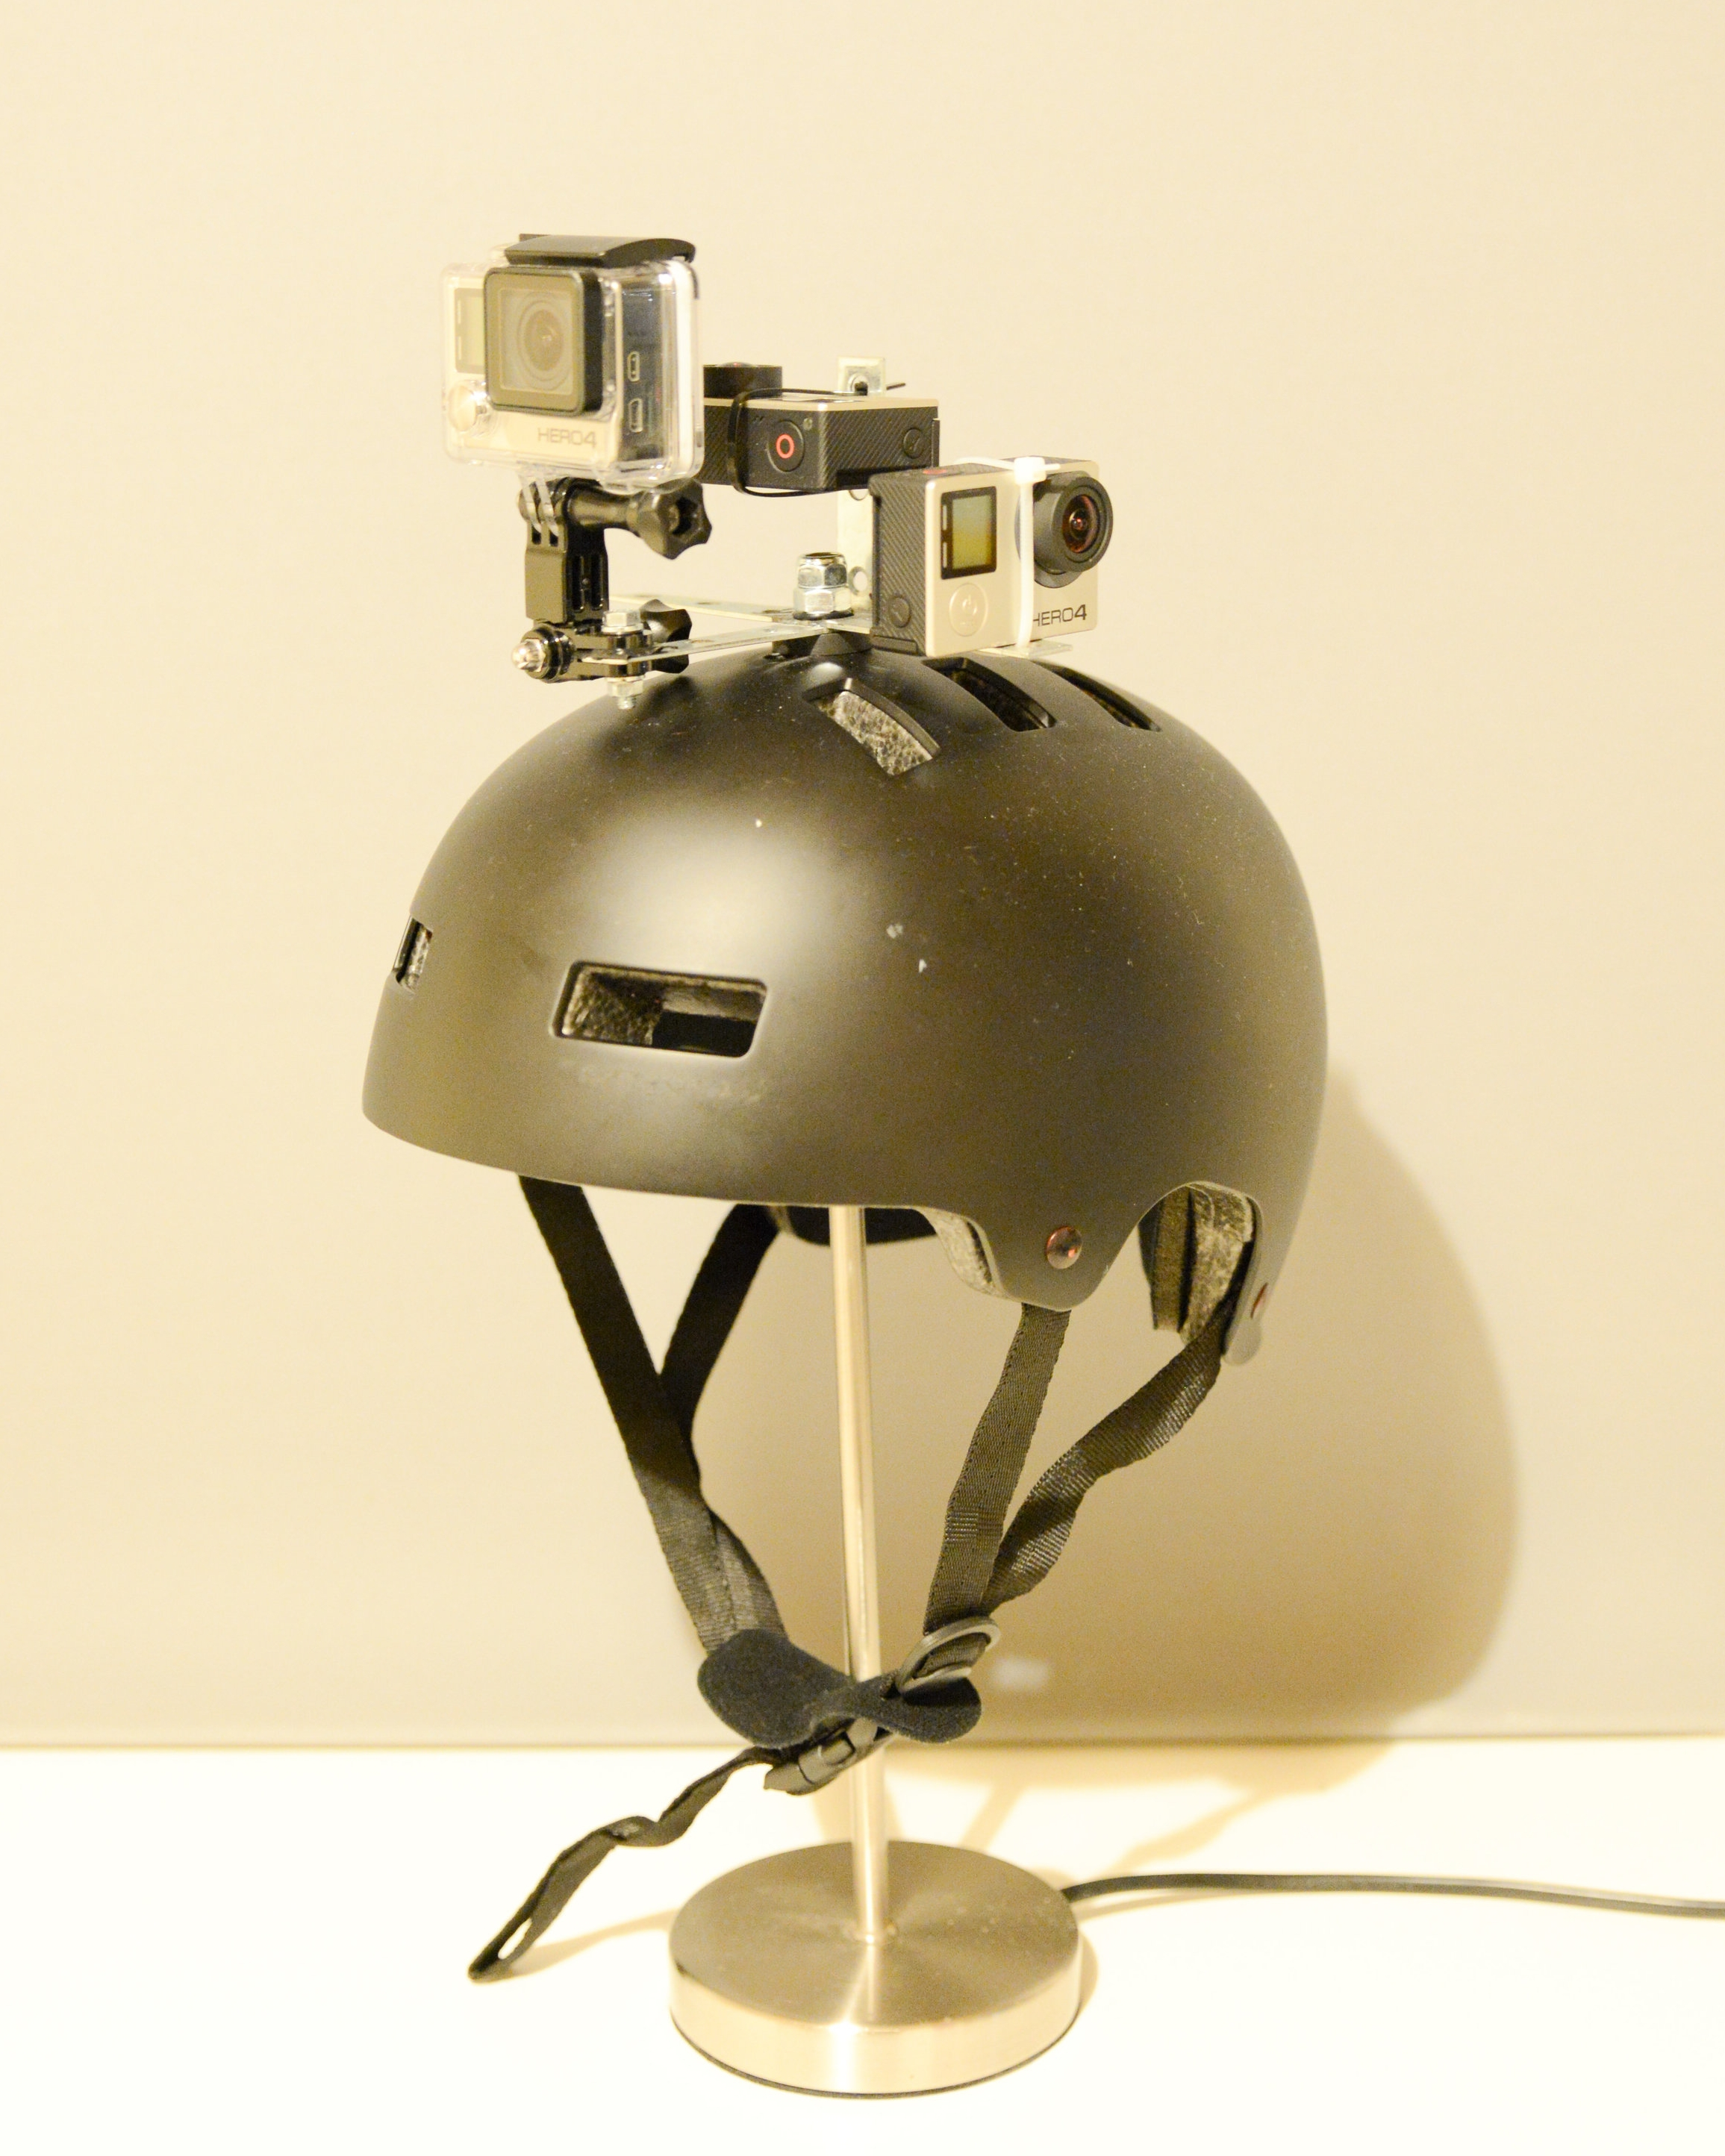 Three cameras attached a helmet following X Y Z axis.